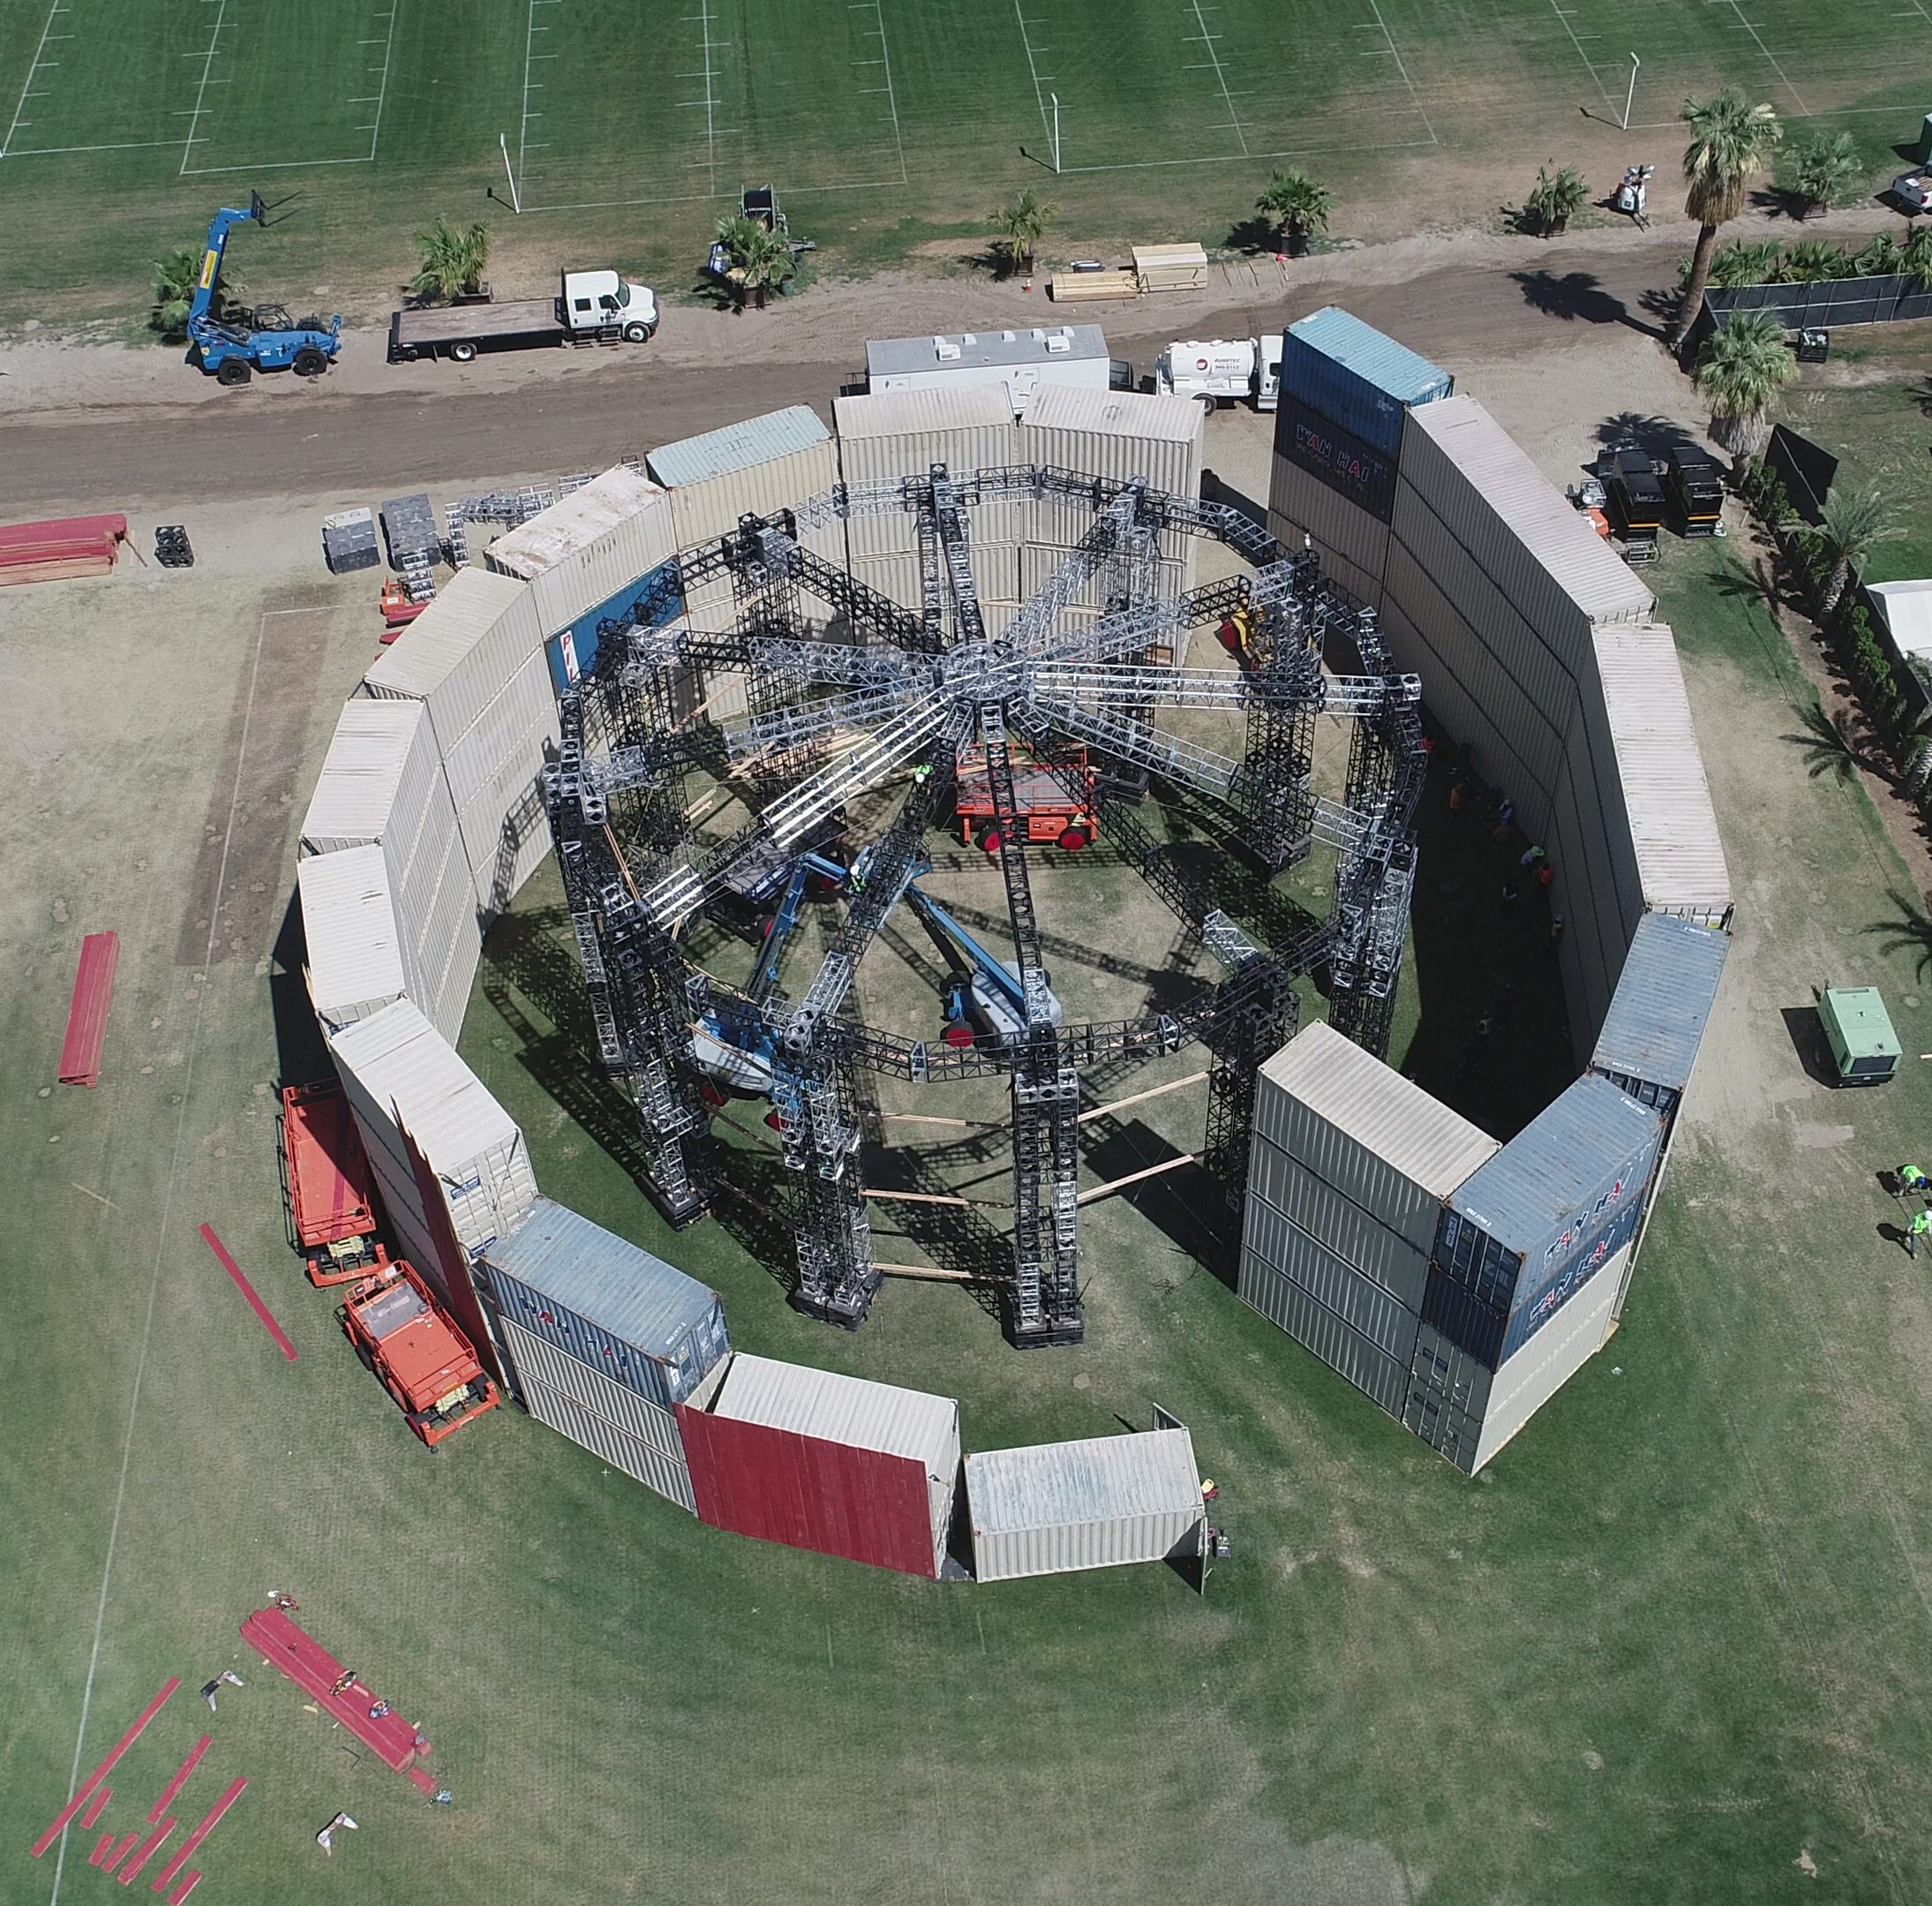 Drone footage of mysterious Coachella structure: Could this be Kanye's stage?